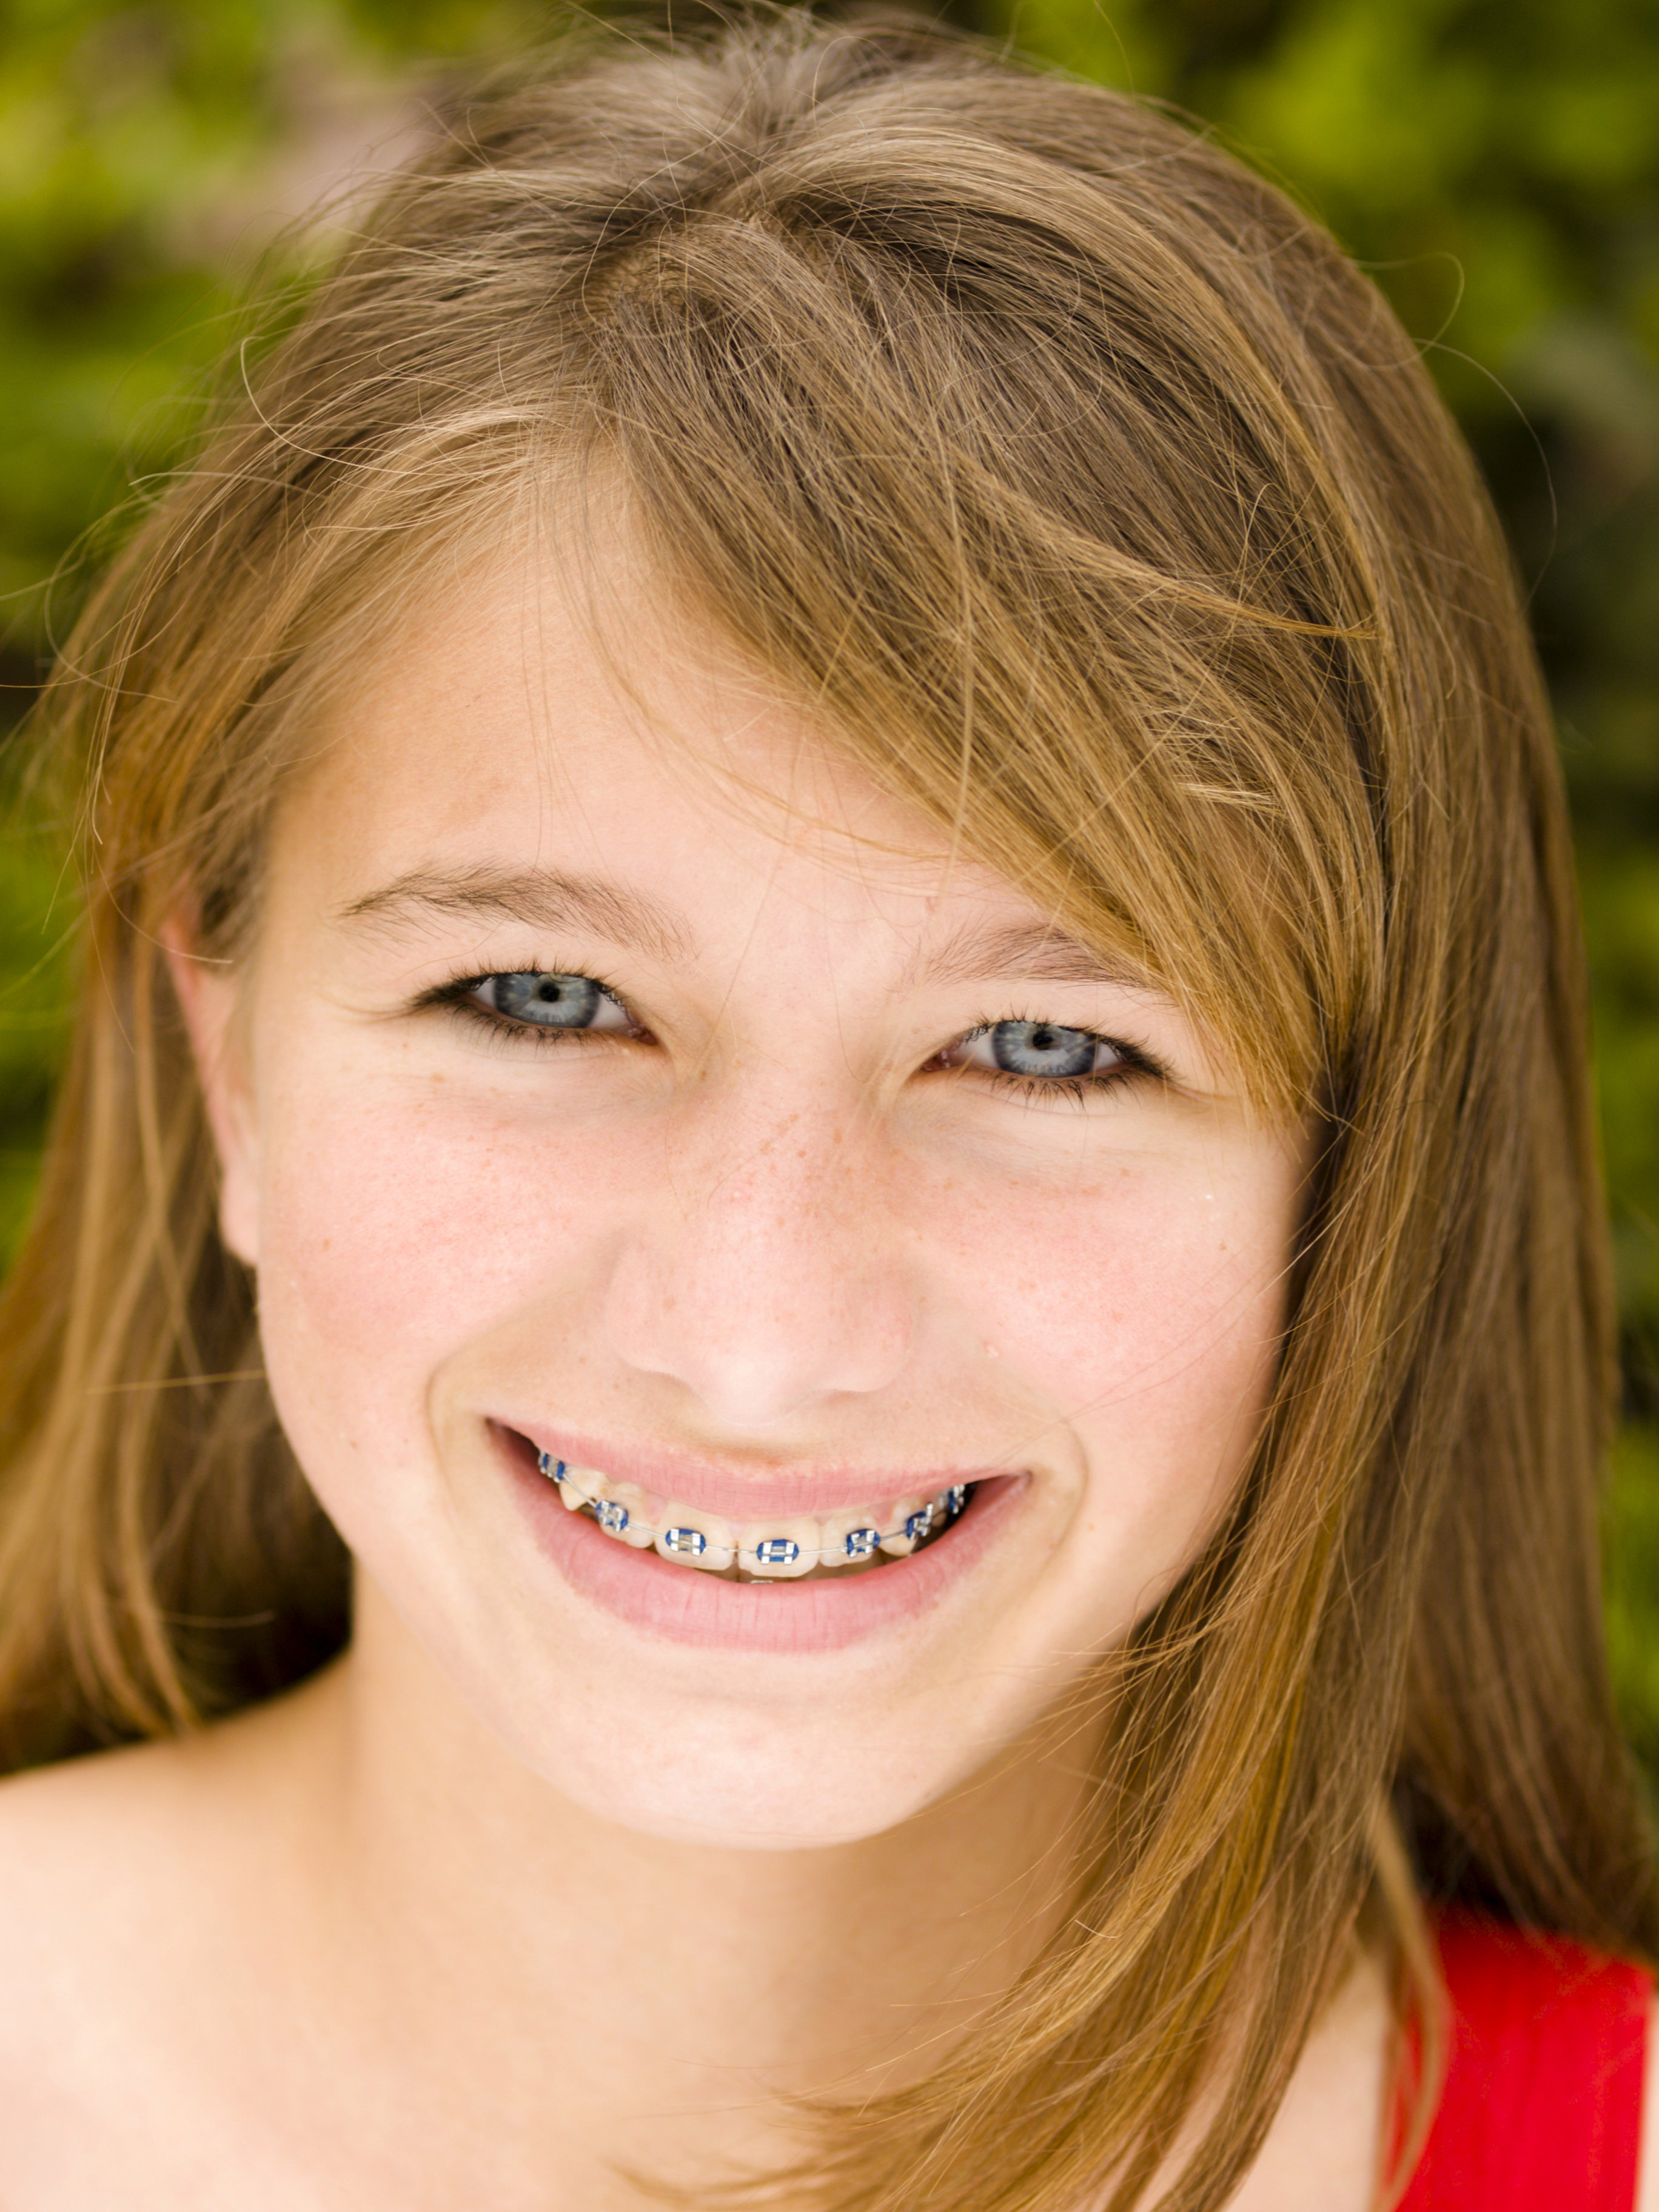 Porn pics of teen girls with braces Page 1